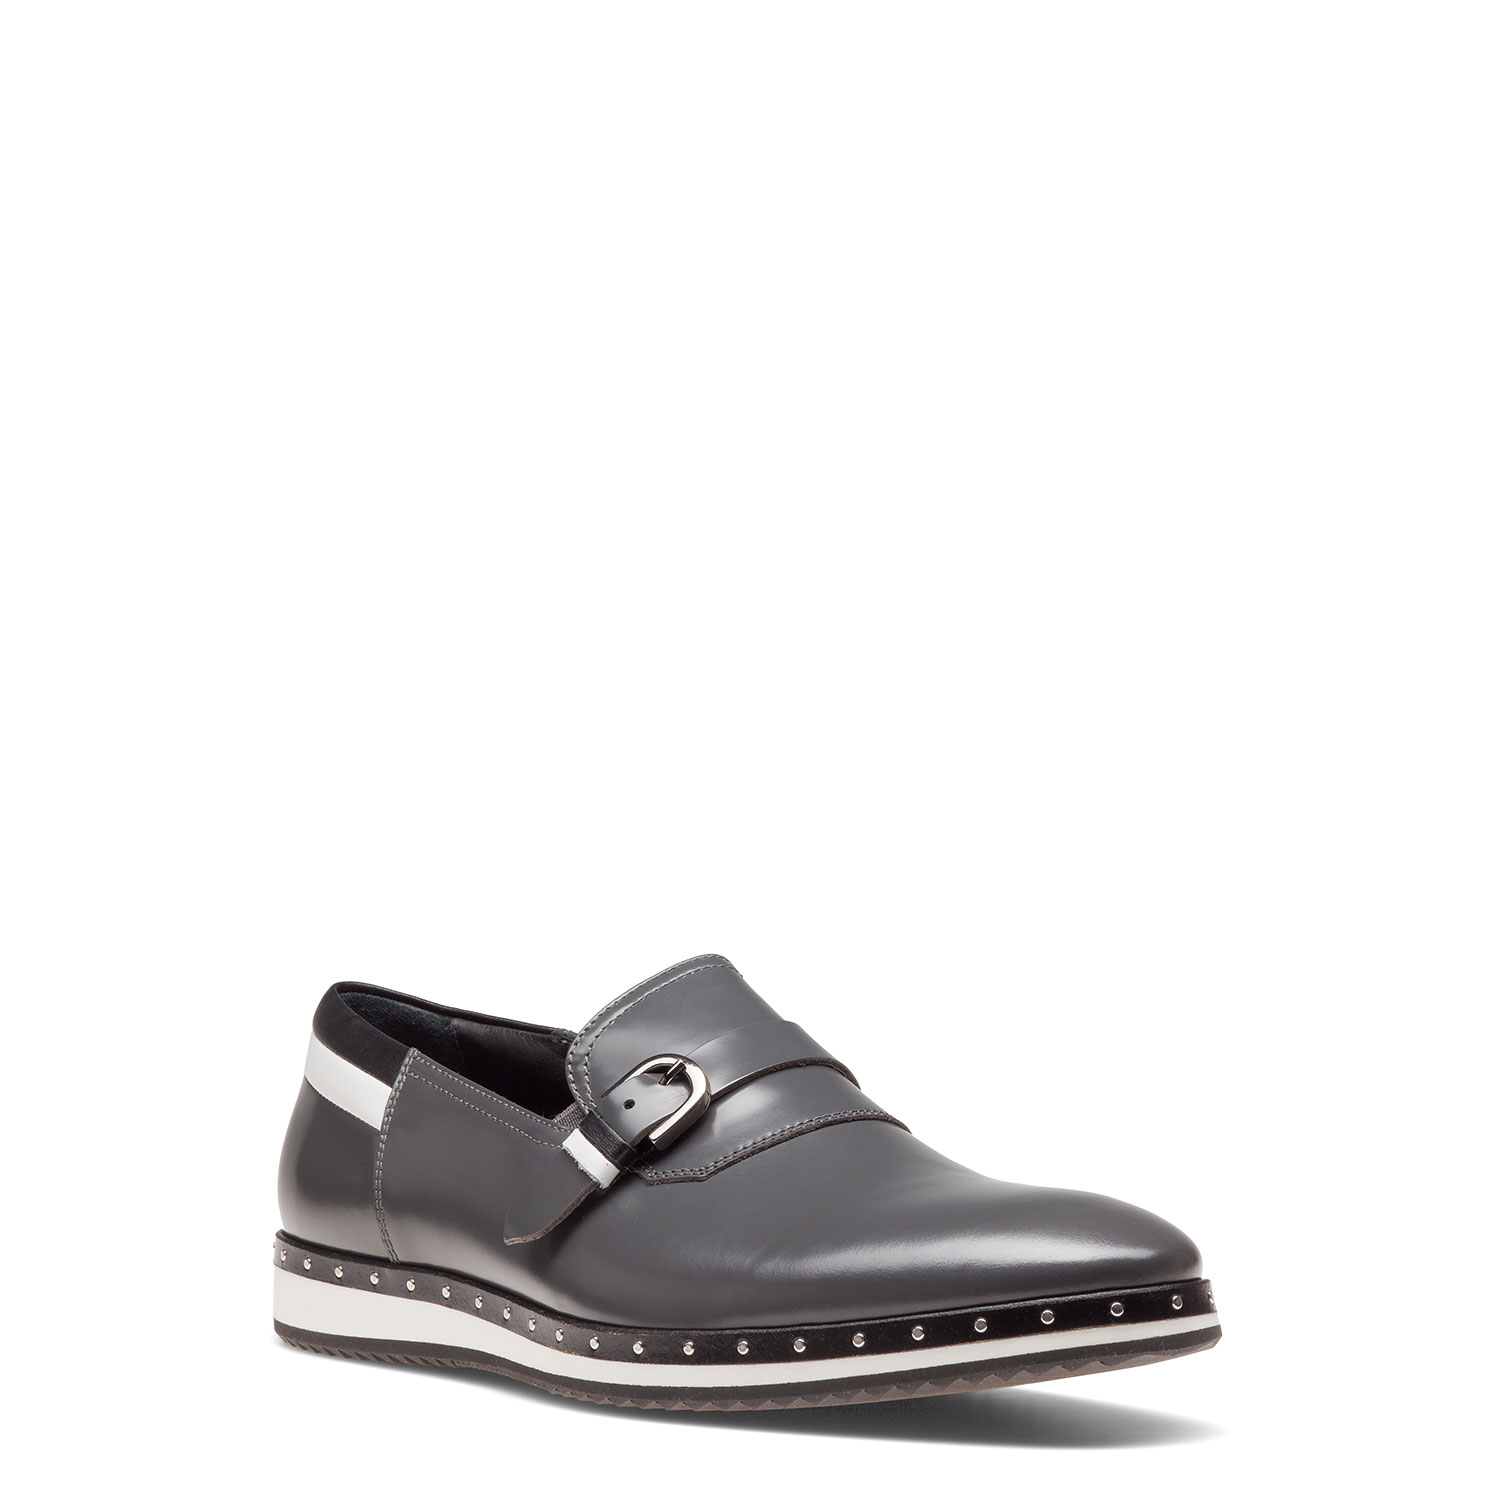 Men's shoes CARLO PAZOLINI GD-BLE1-10